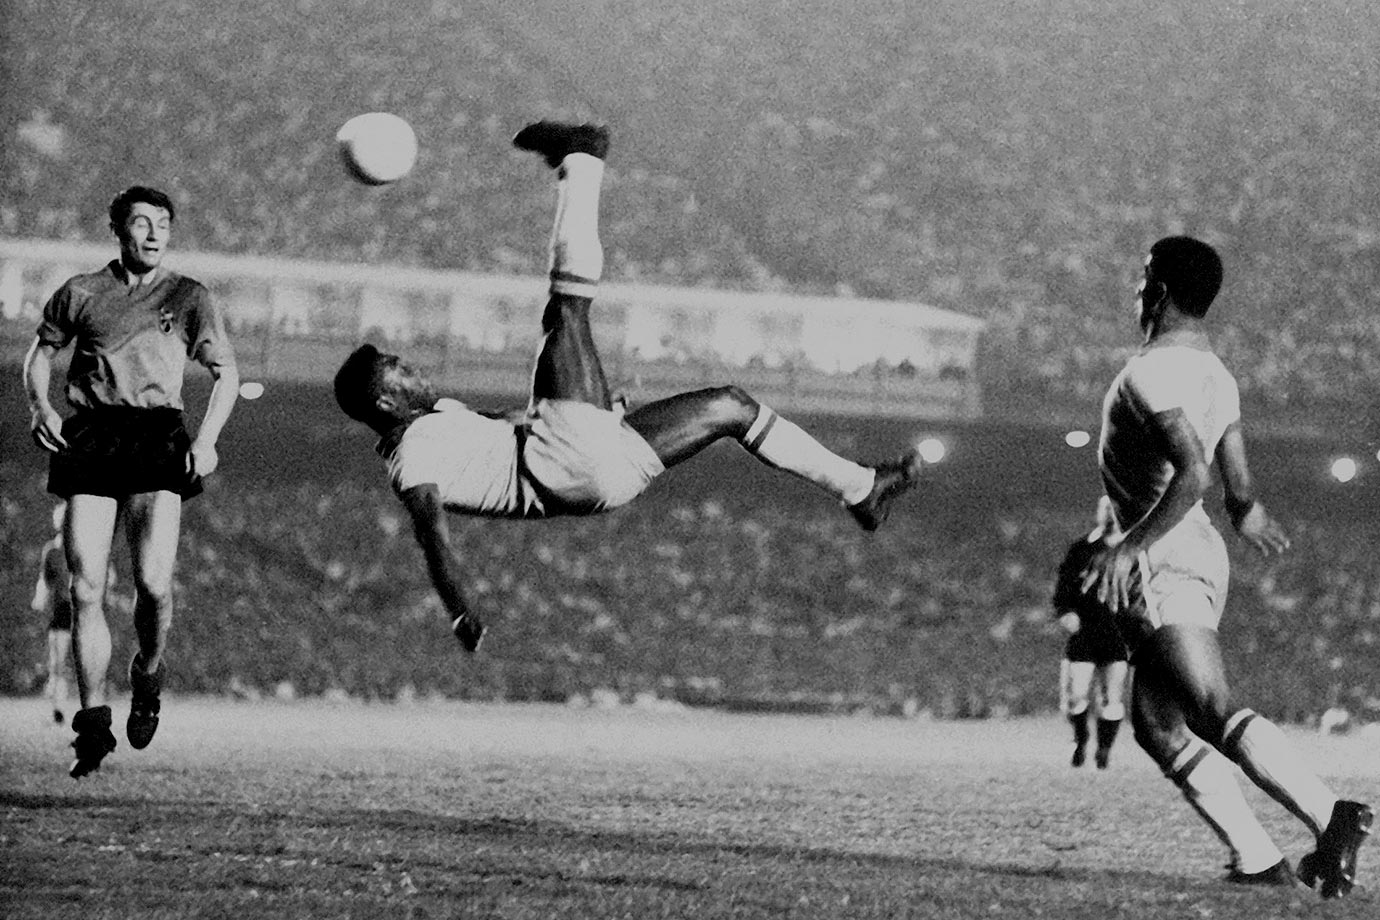 Pelé demonstrates the proper bicycle kick technique during a contest in 1968.